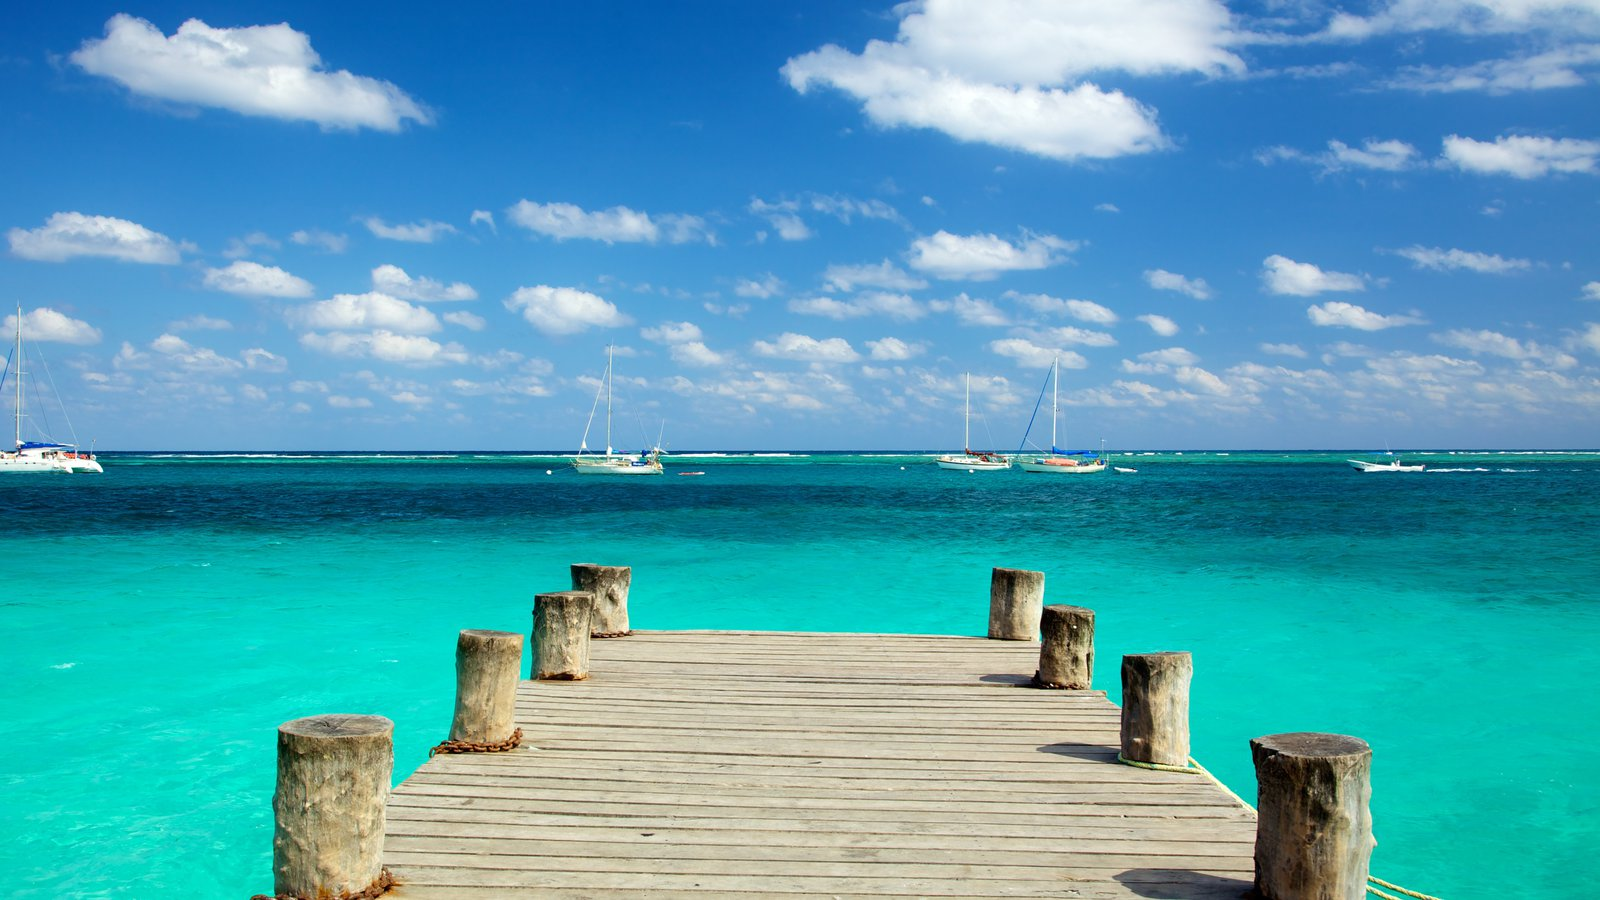 Puerto Morelos featuring a bay or harbour, landscape views and boating